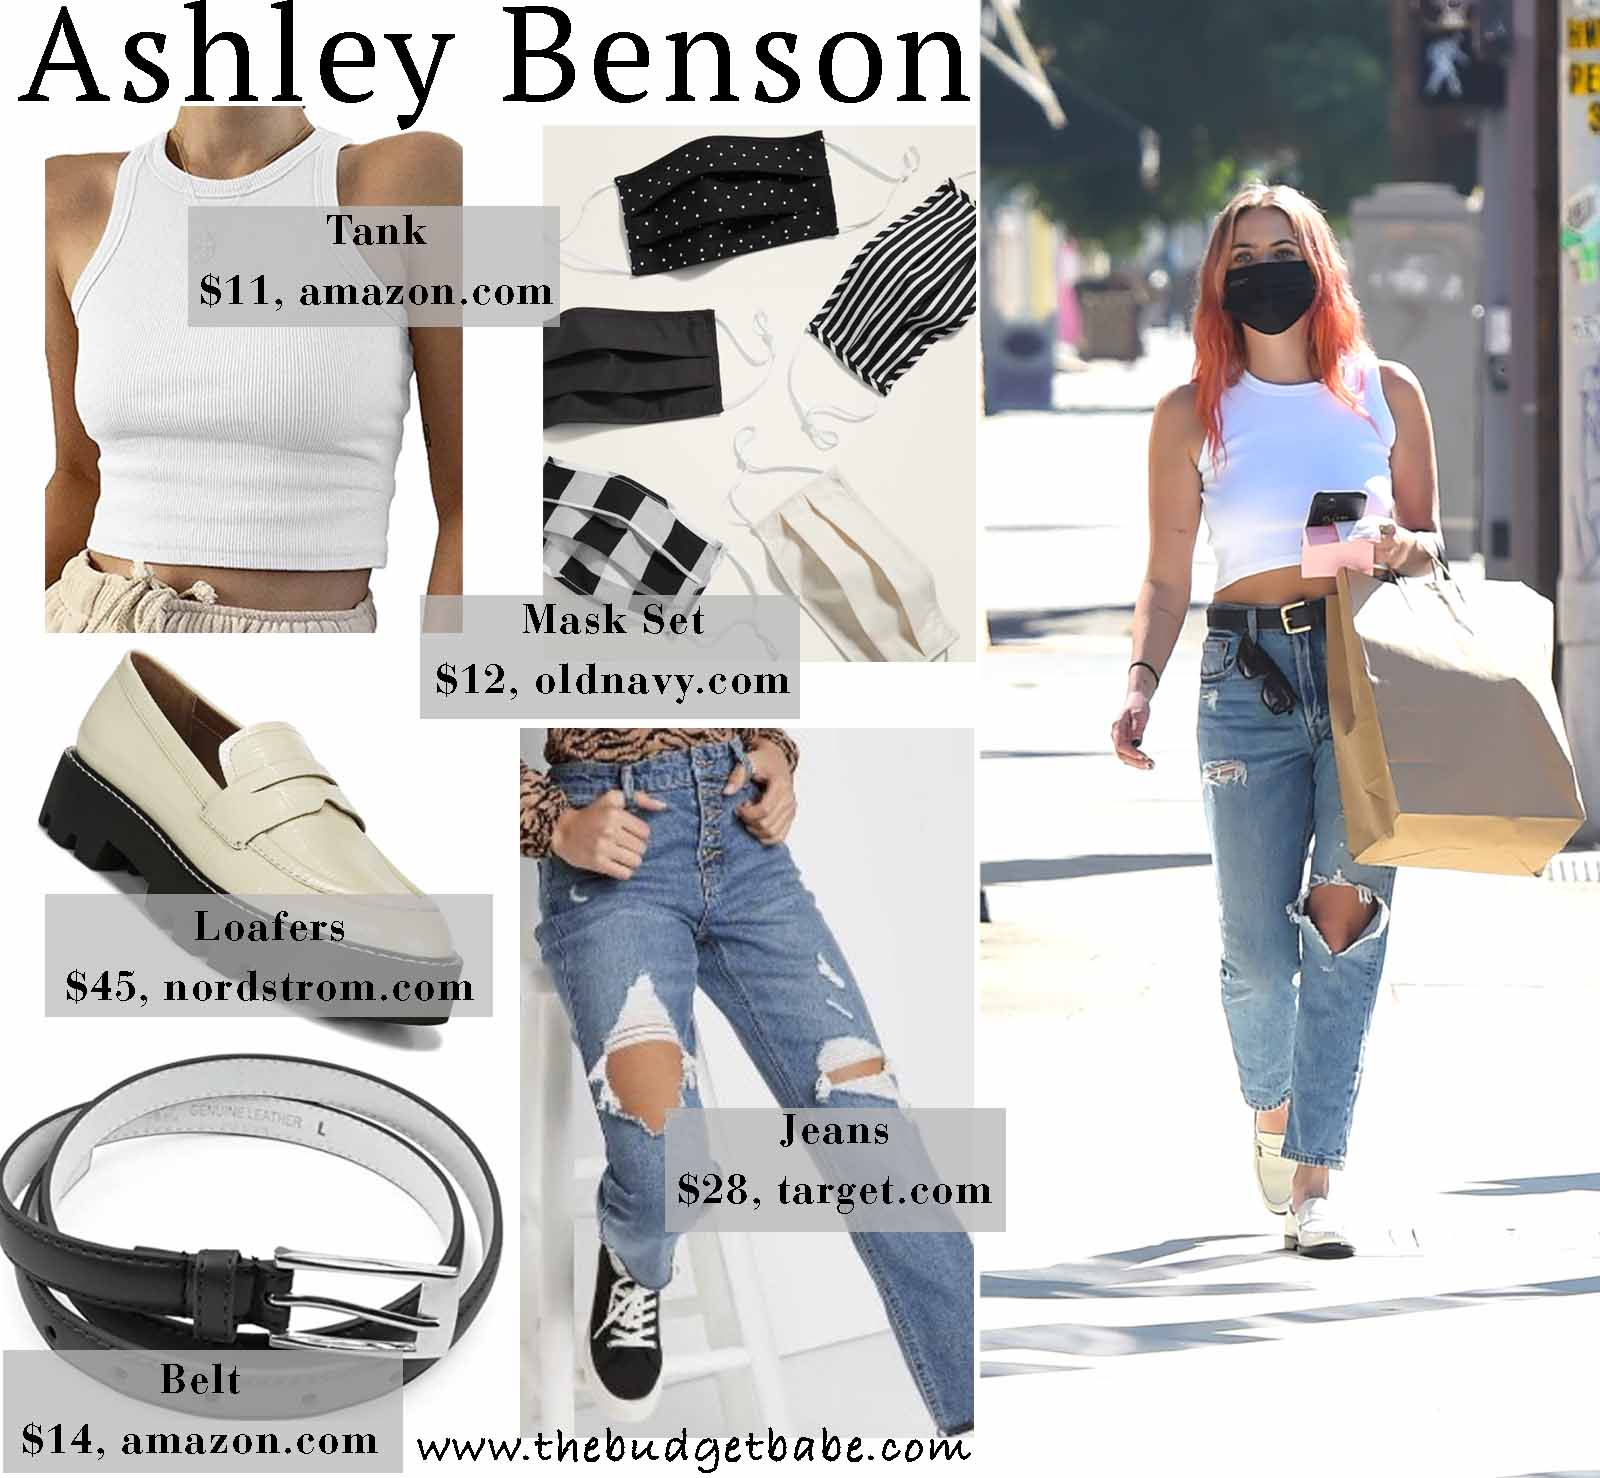 Ashley Benson rocks a tank and jeans.